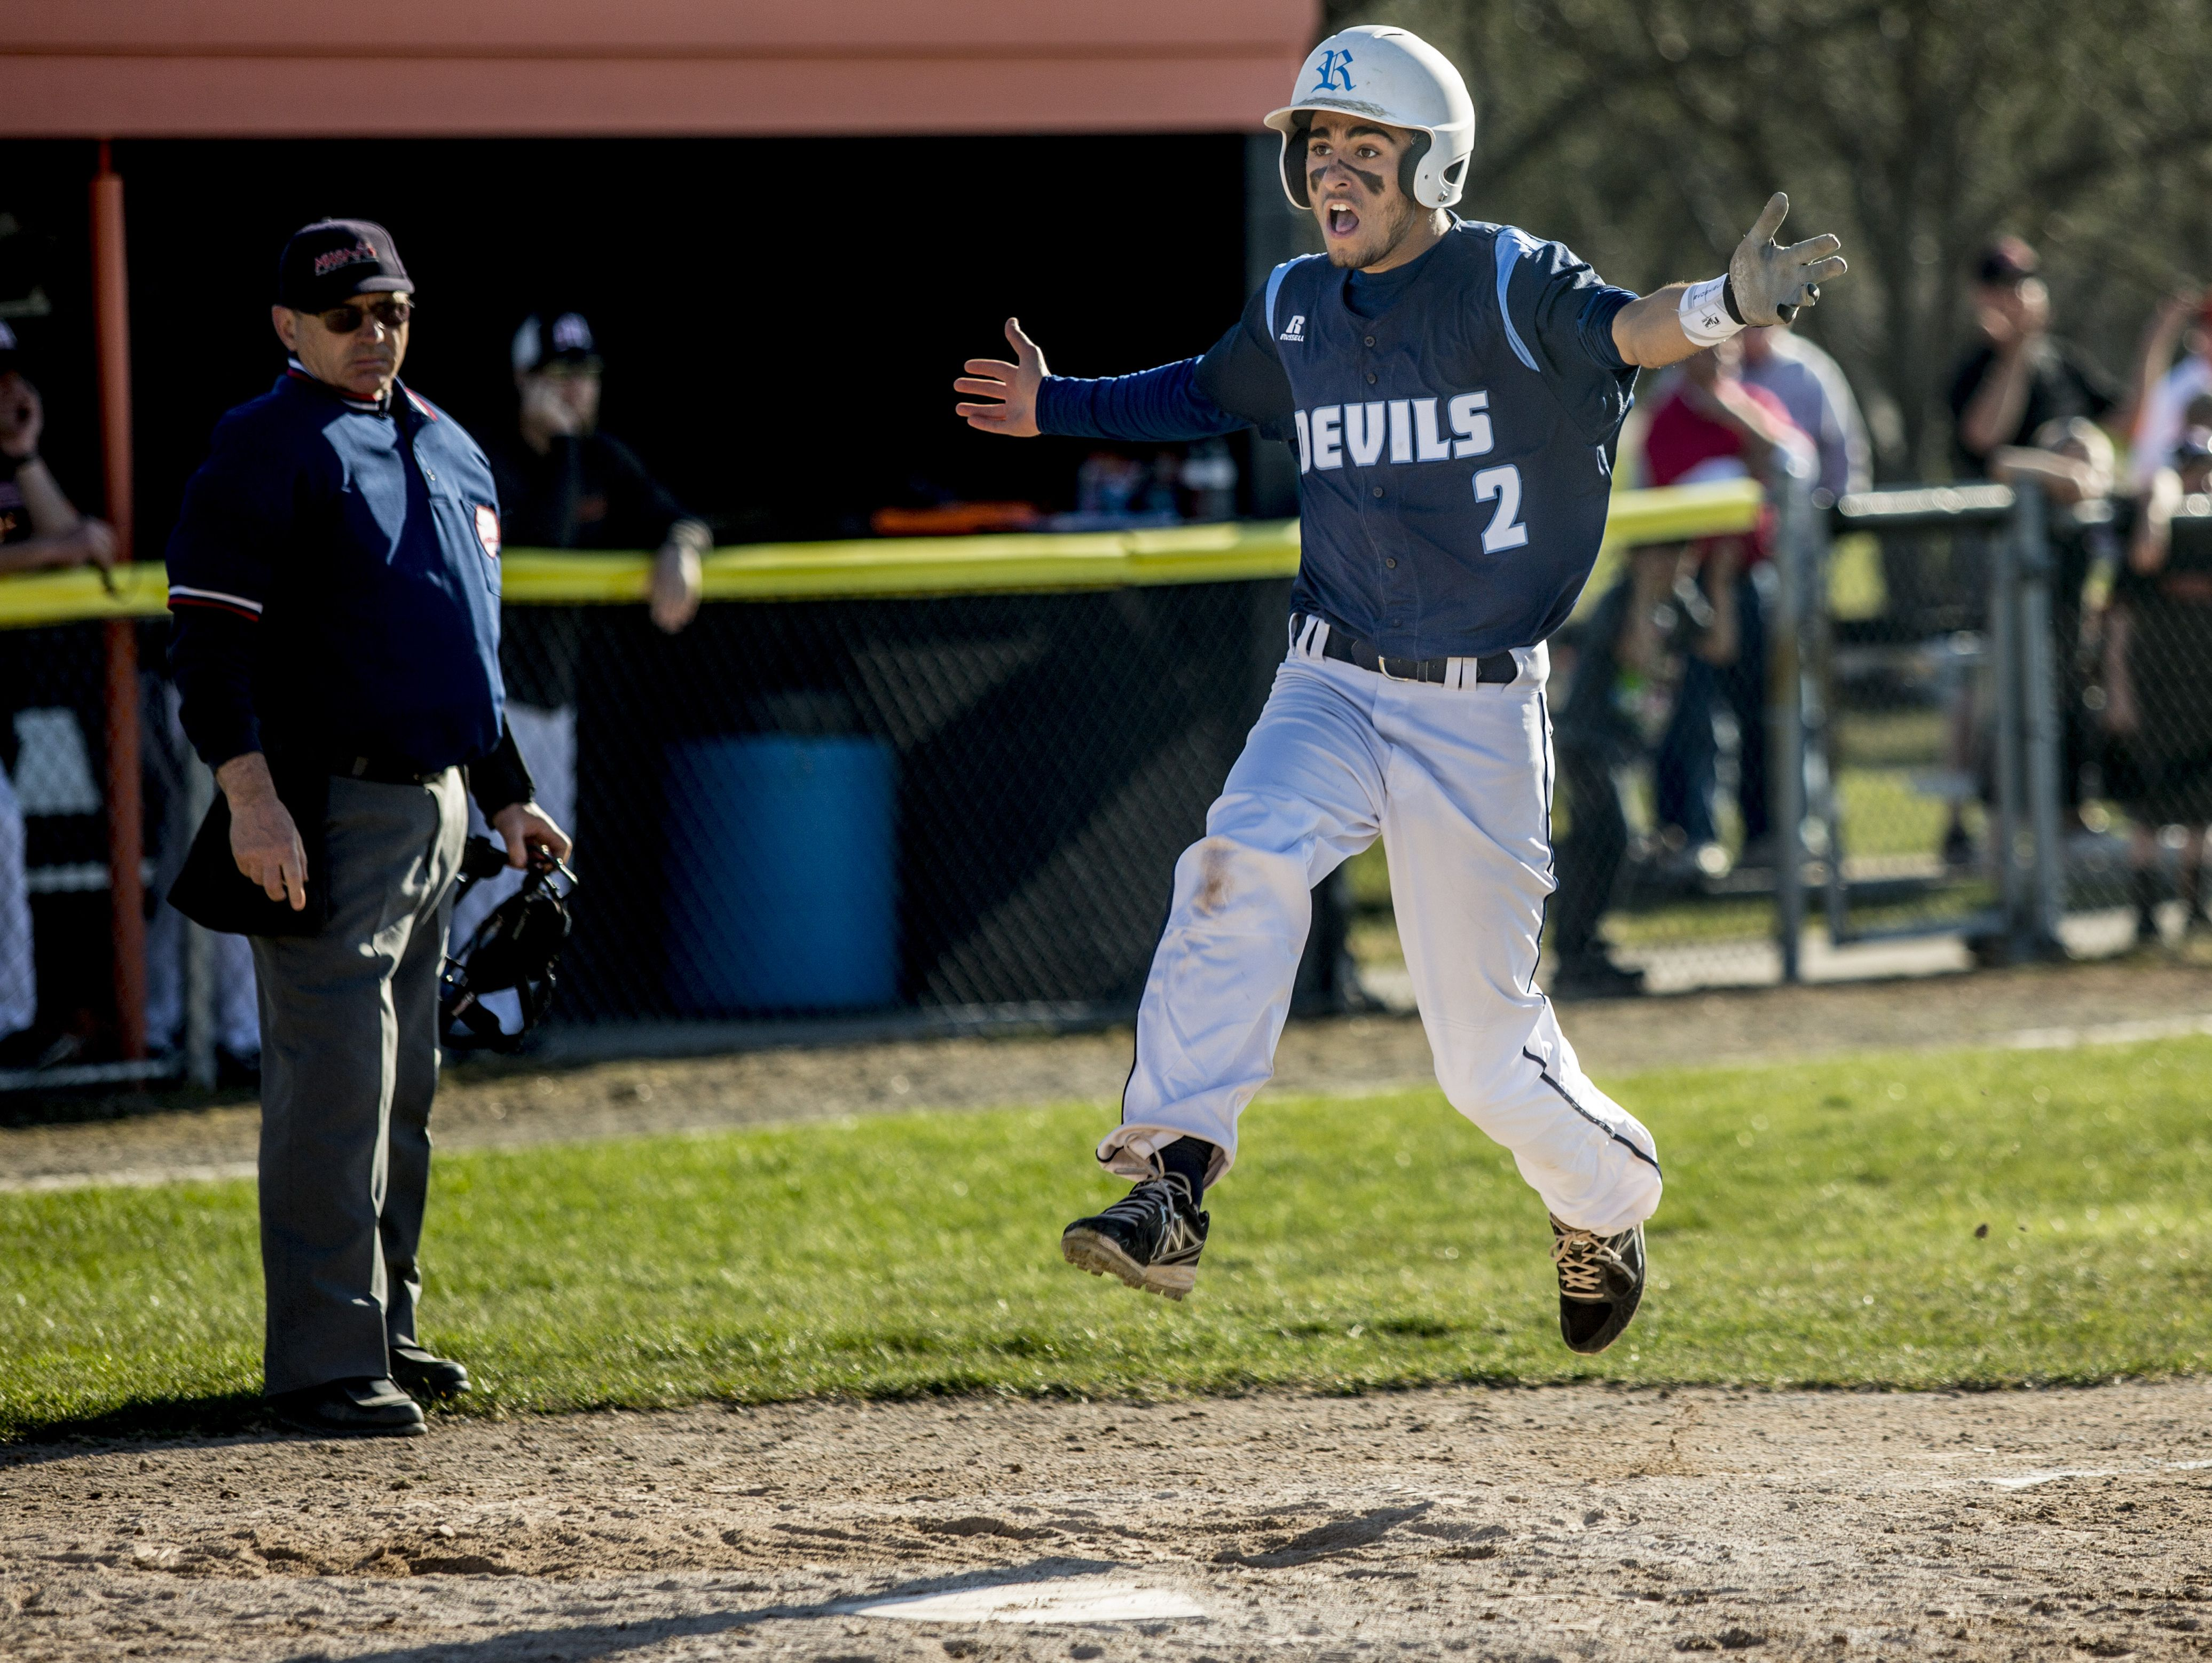 Richmond's Stefan Fenwick celebrates as he runs home to score during a baseball game Friday, April 15, 2016 at Marine City High School.